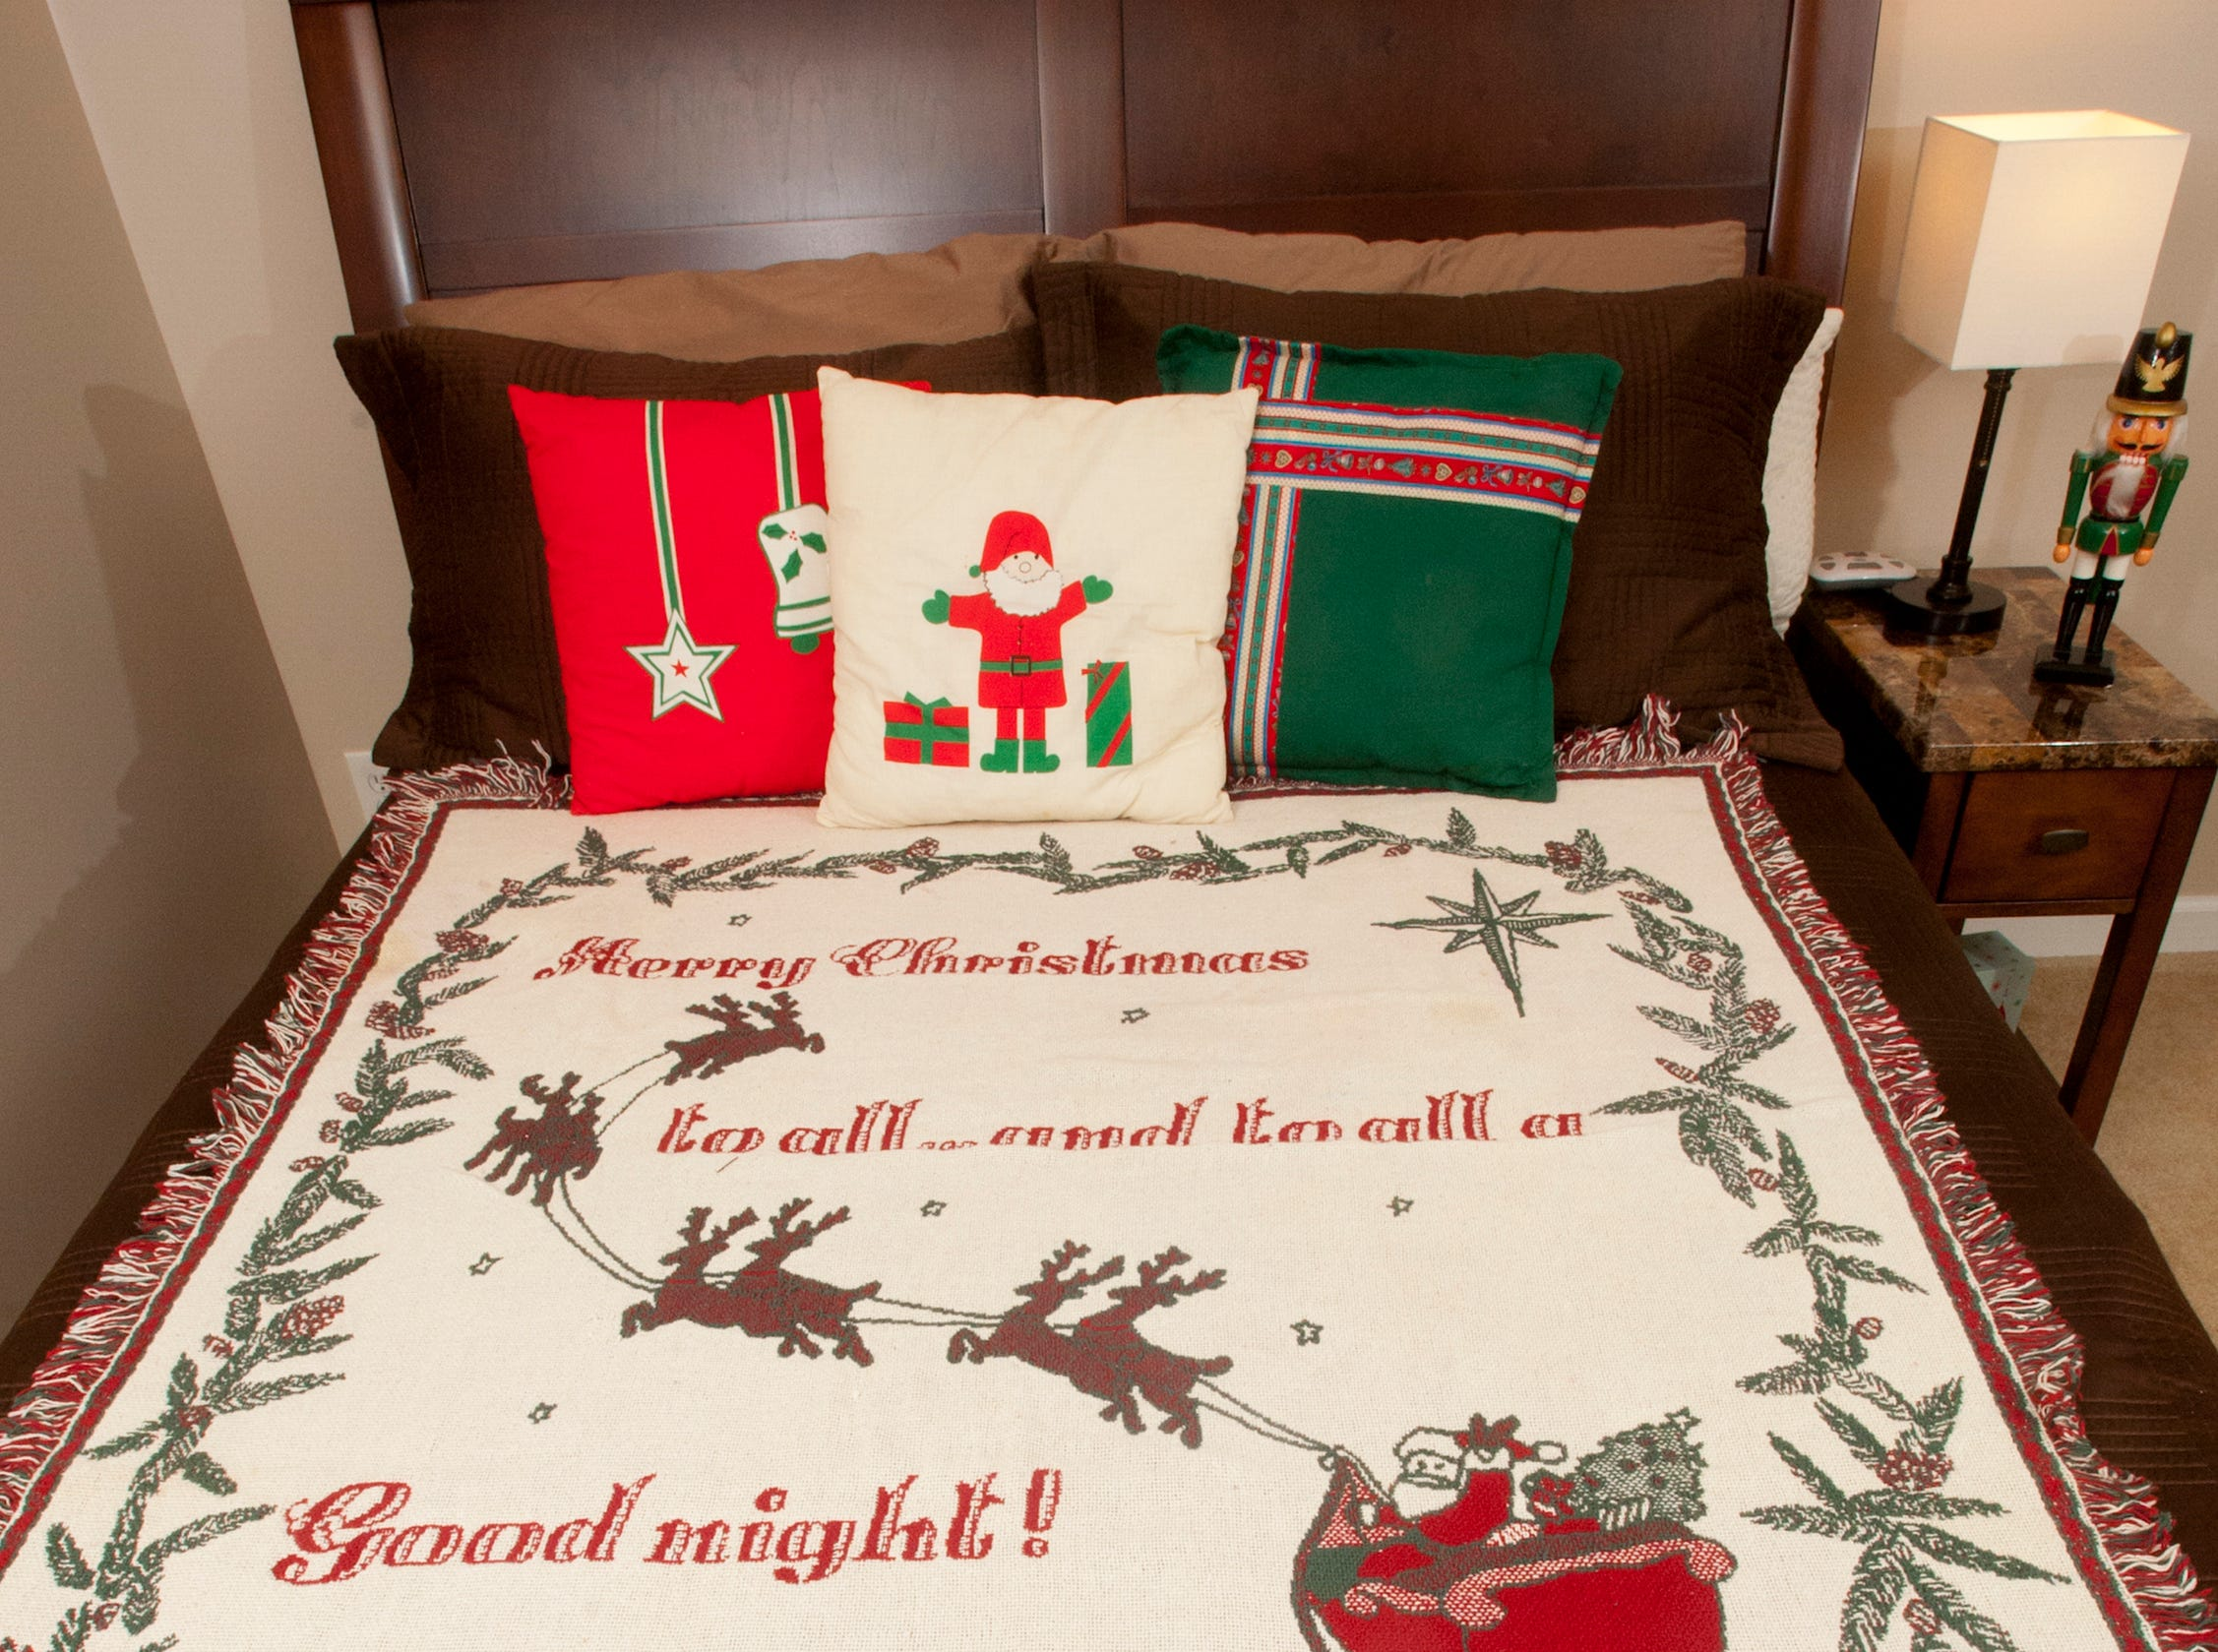 A Christmas themed guest bed in the basement off the bourbon bar.